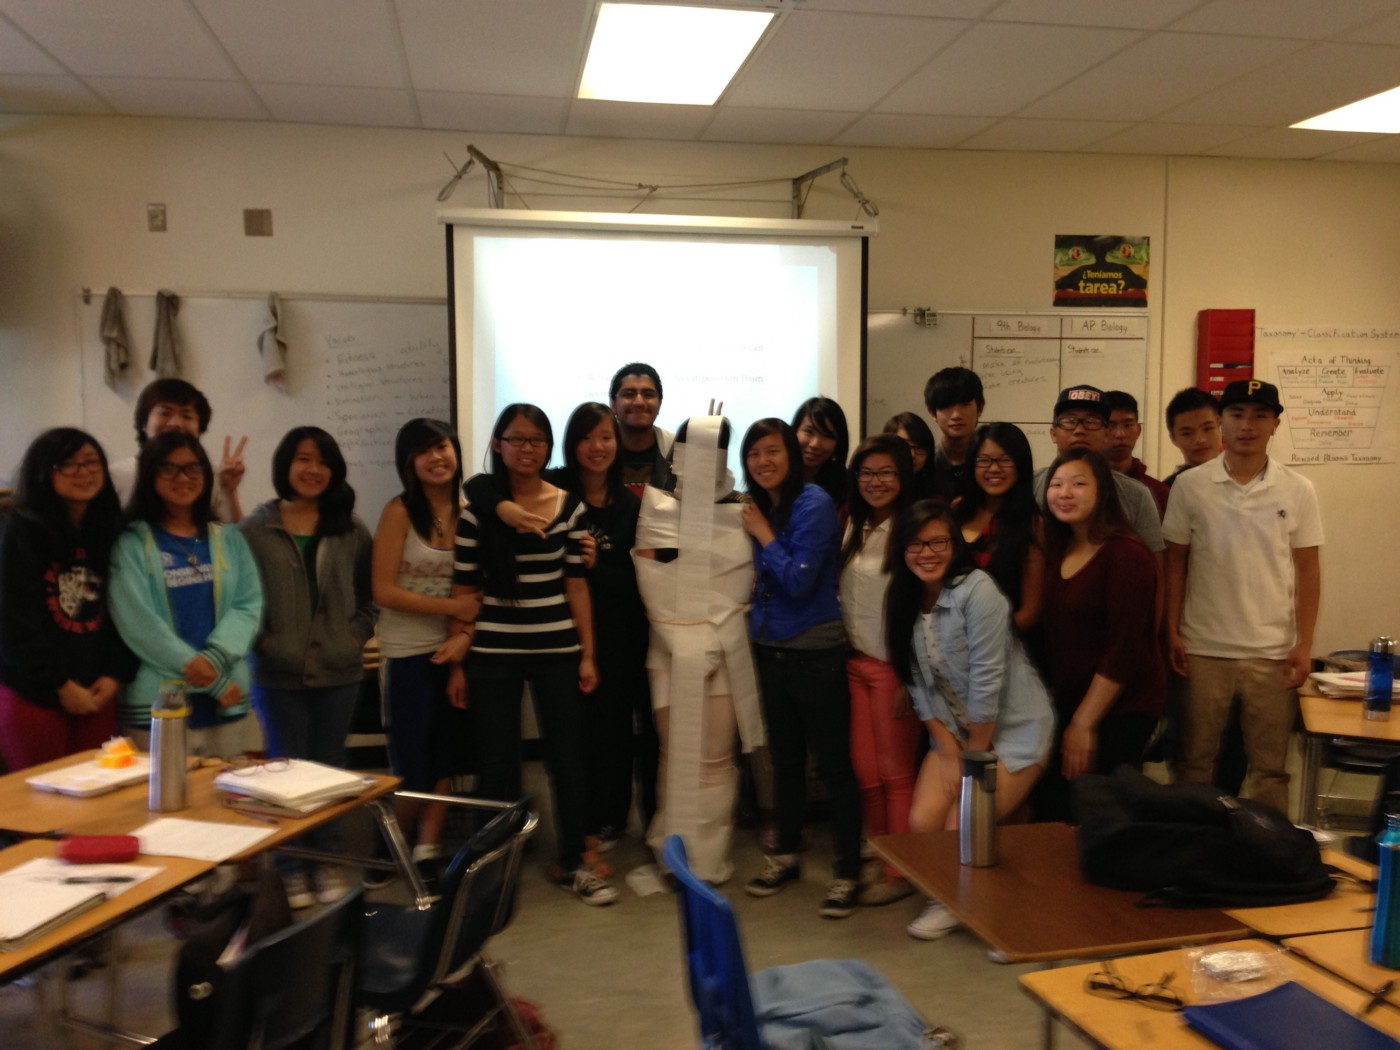 2013. Oakland High School. My AP biology class after they finished their year-end projects.